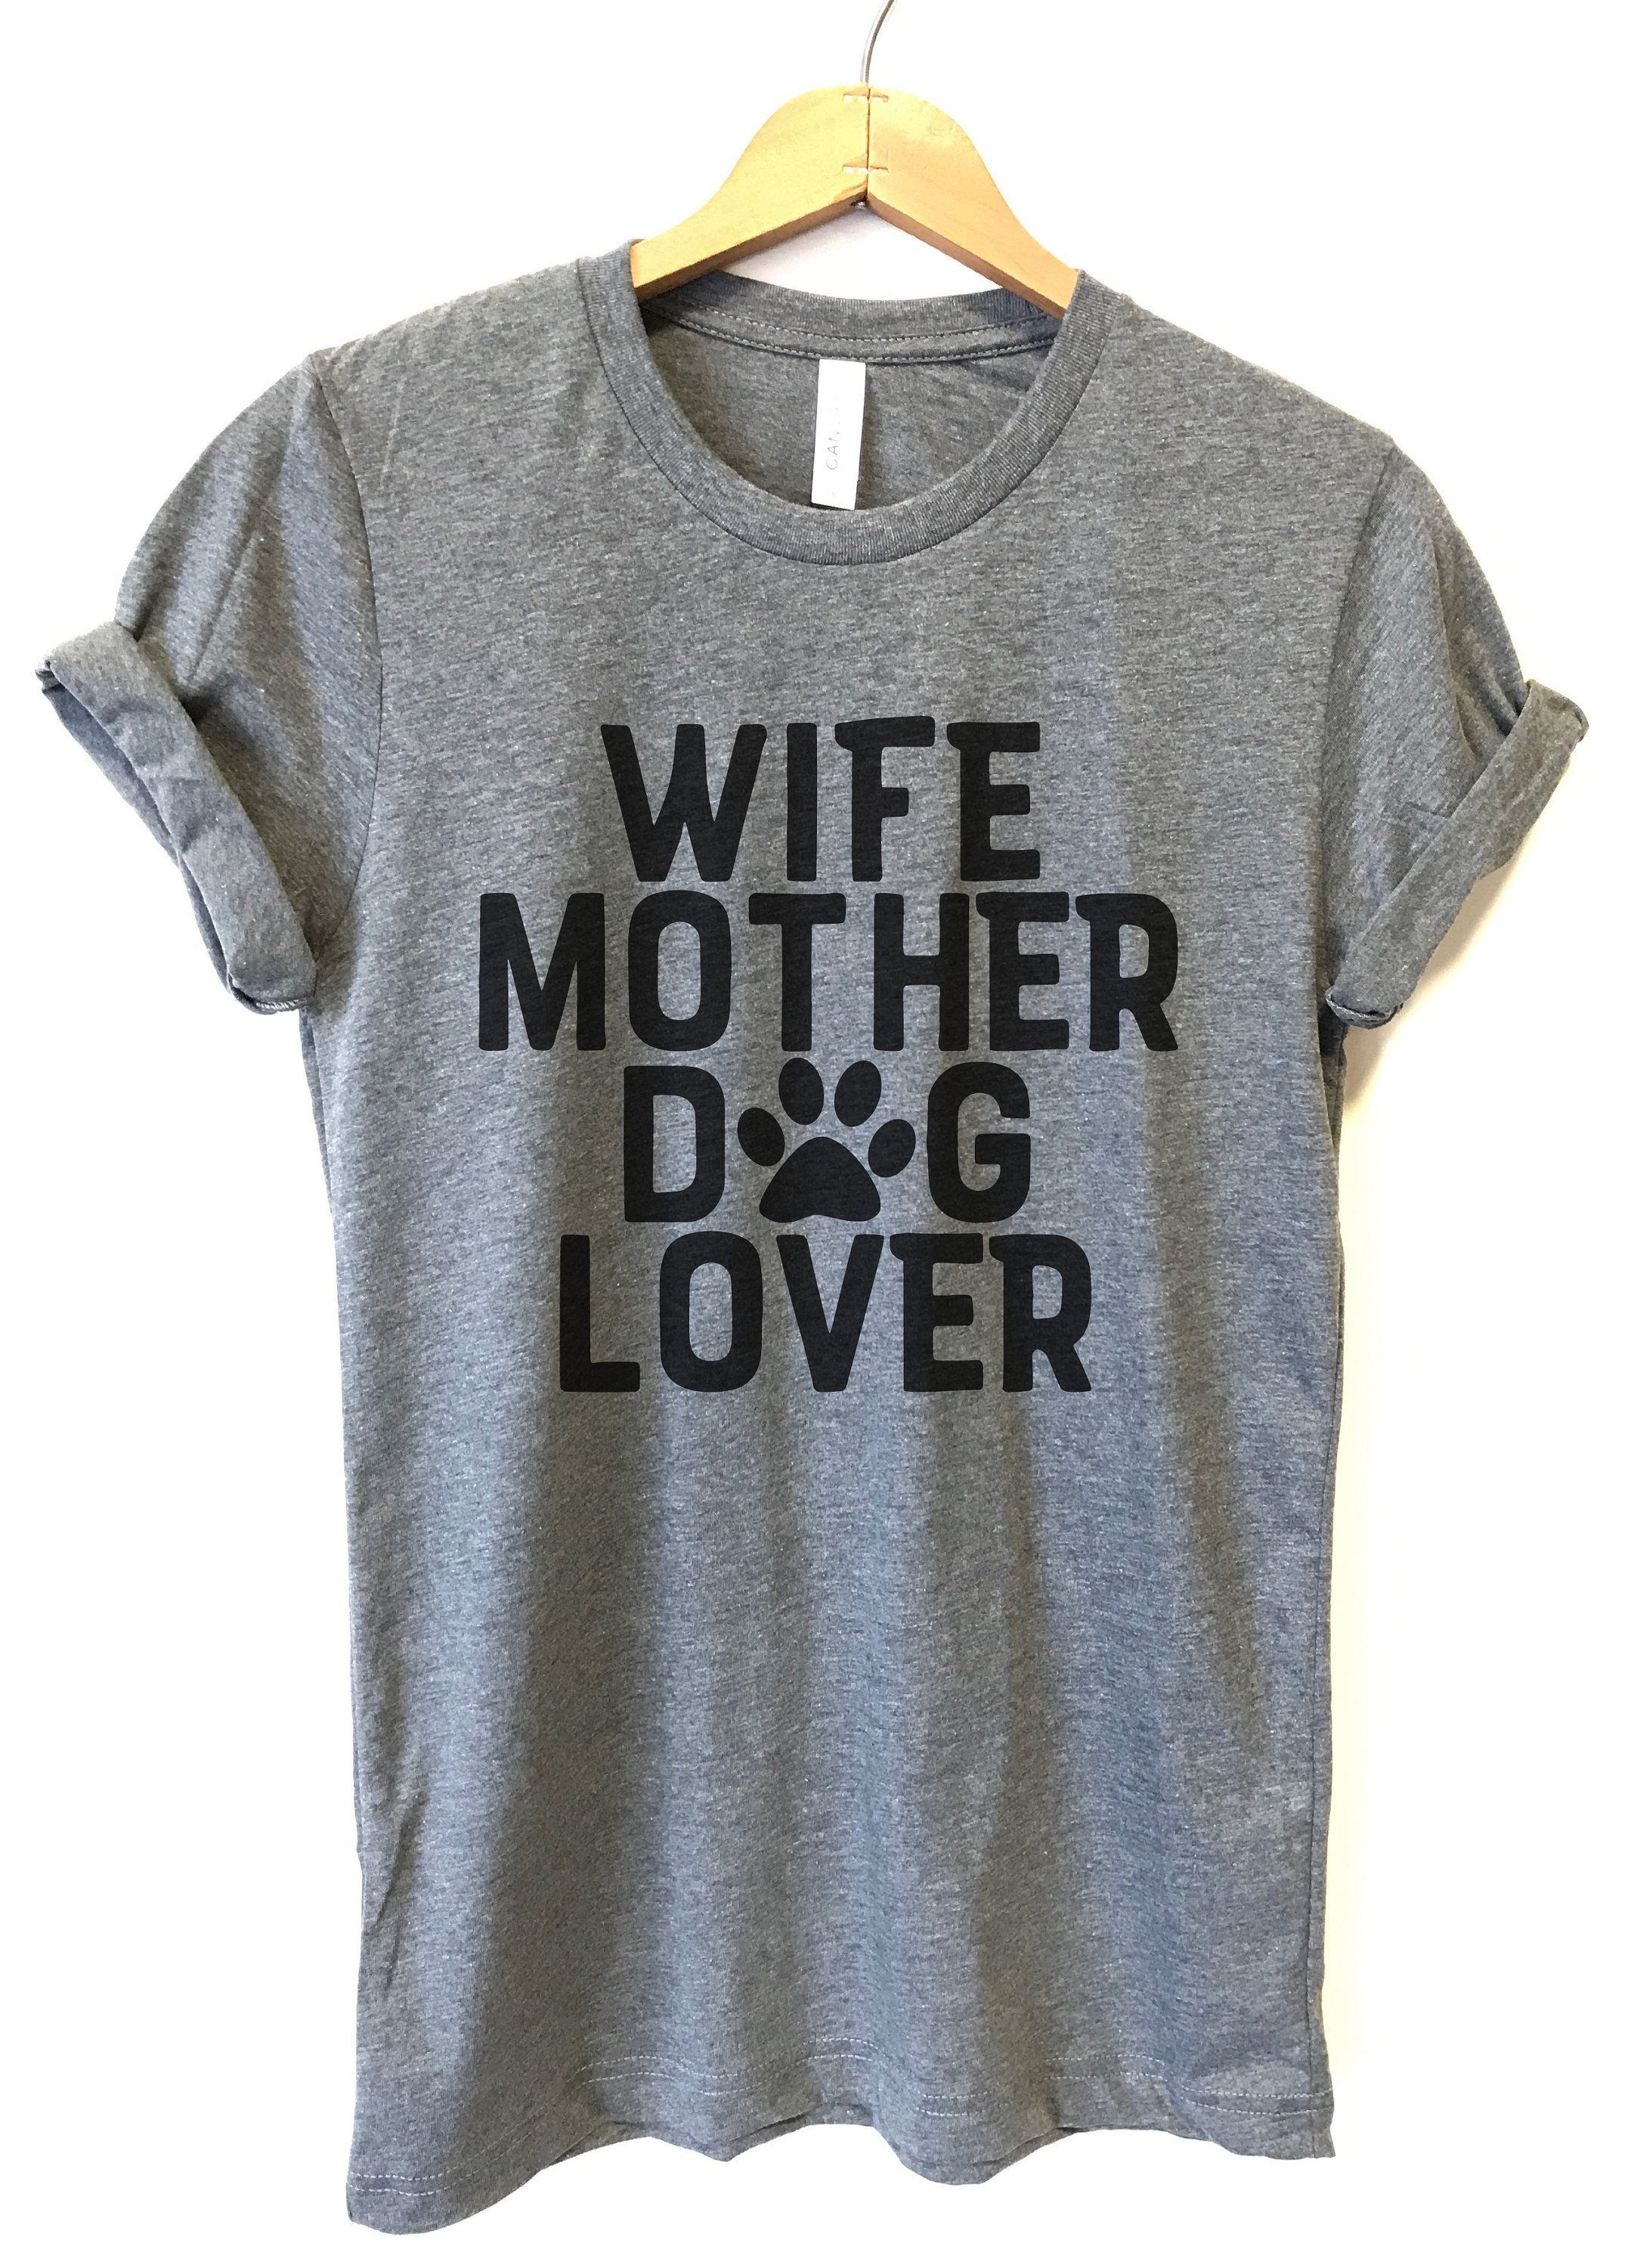 6605907acb99 Wife Mother Dog Lover, T Shirts for Women, Graphic T Shirt, Graphic Tee